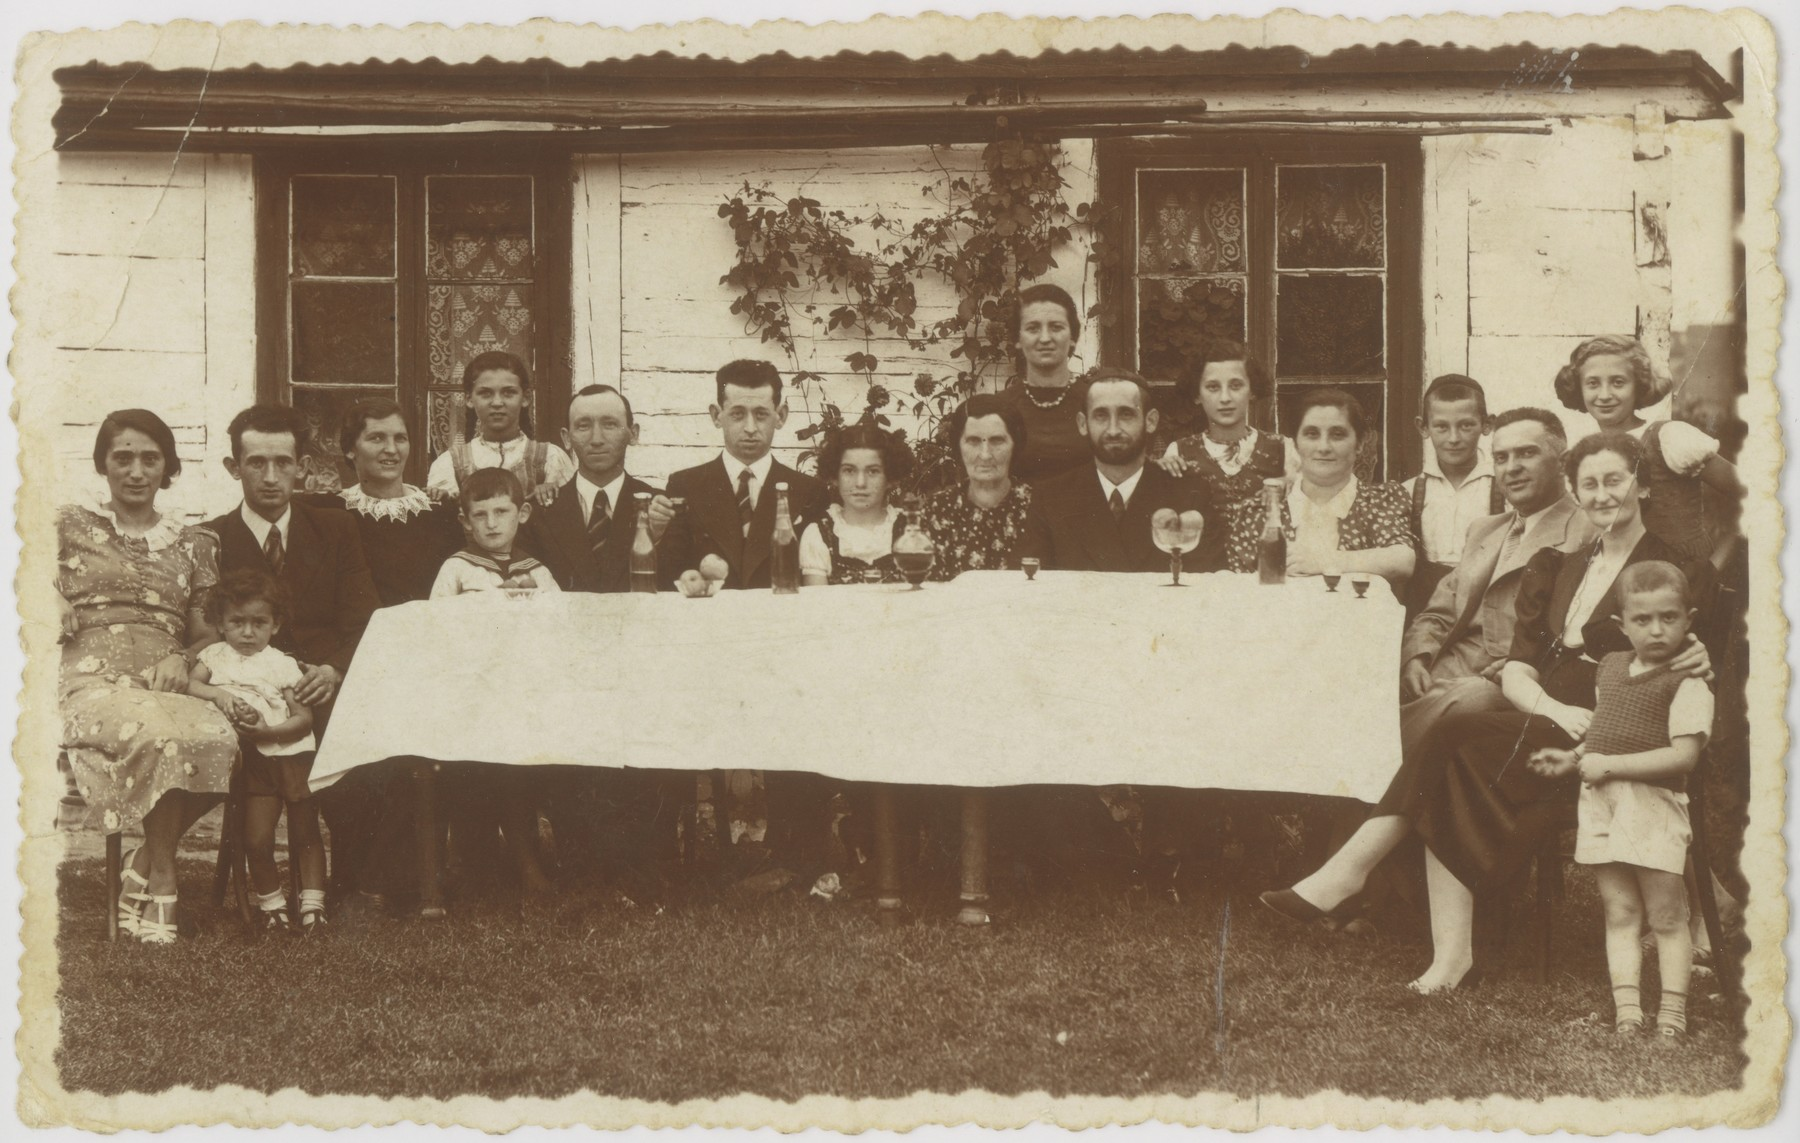 The Rybstein and Zylberszac families gather for a large family reunion.  Gucia Zylberszac is pictured standing on the far left.  Of all those pictured, only she survived the Holocaust.